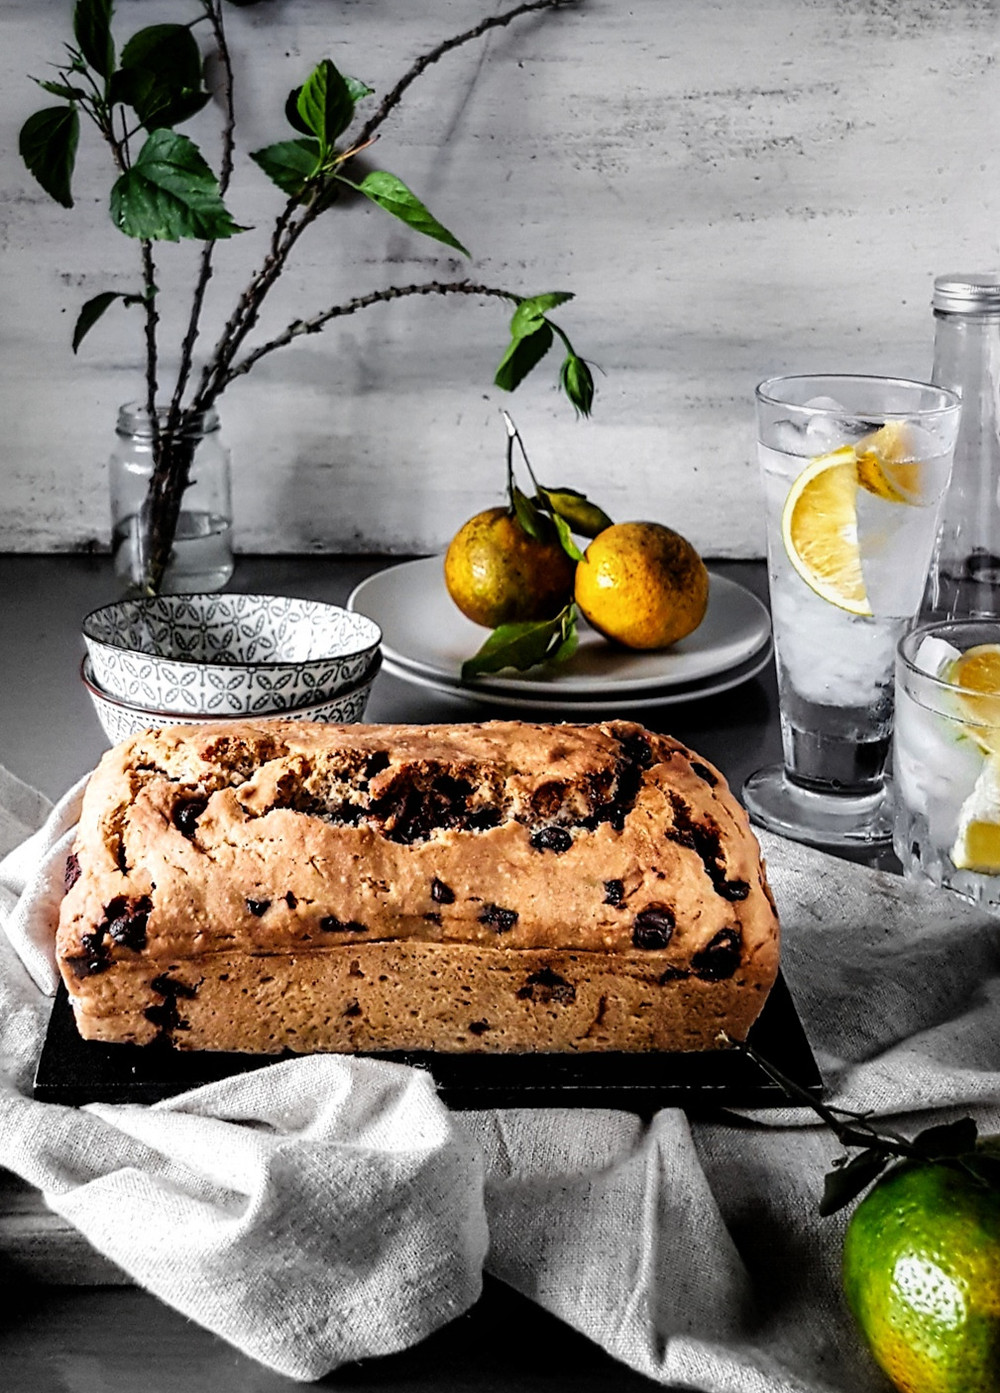 Just out of the oven, Gluten Free Vegan Lemon Chocolate Chip Loaf